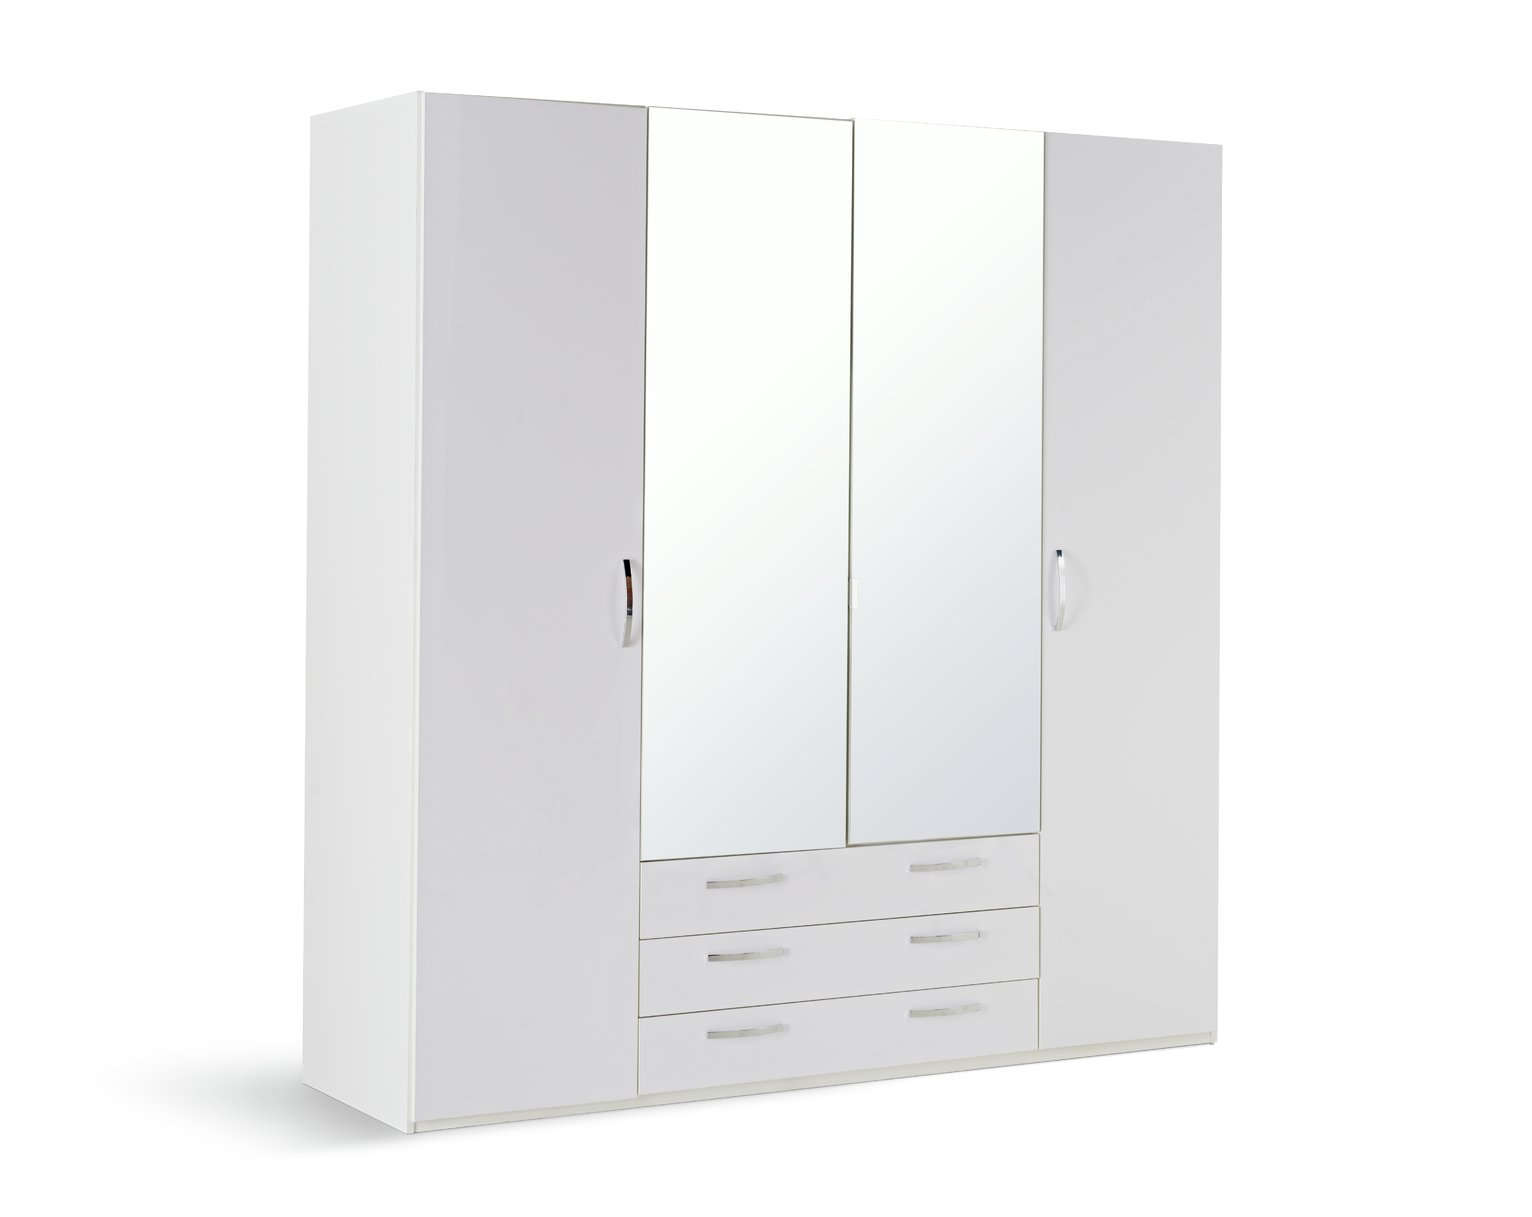 Argos Home Hallingford Gloss 4Dr 3Drw Mirror Wardrobe -White